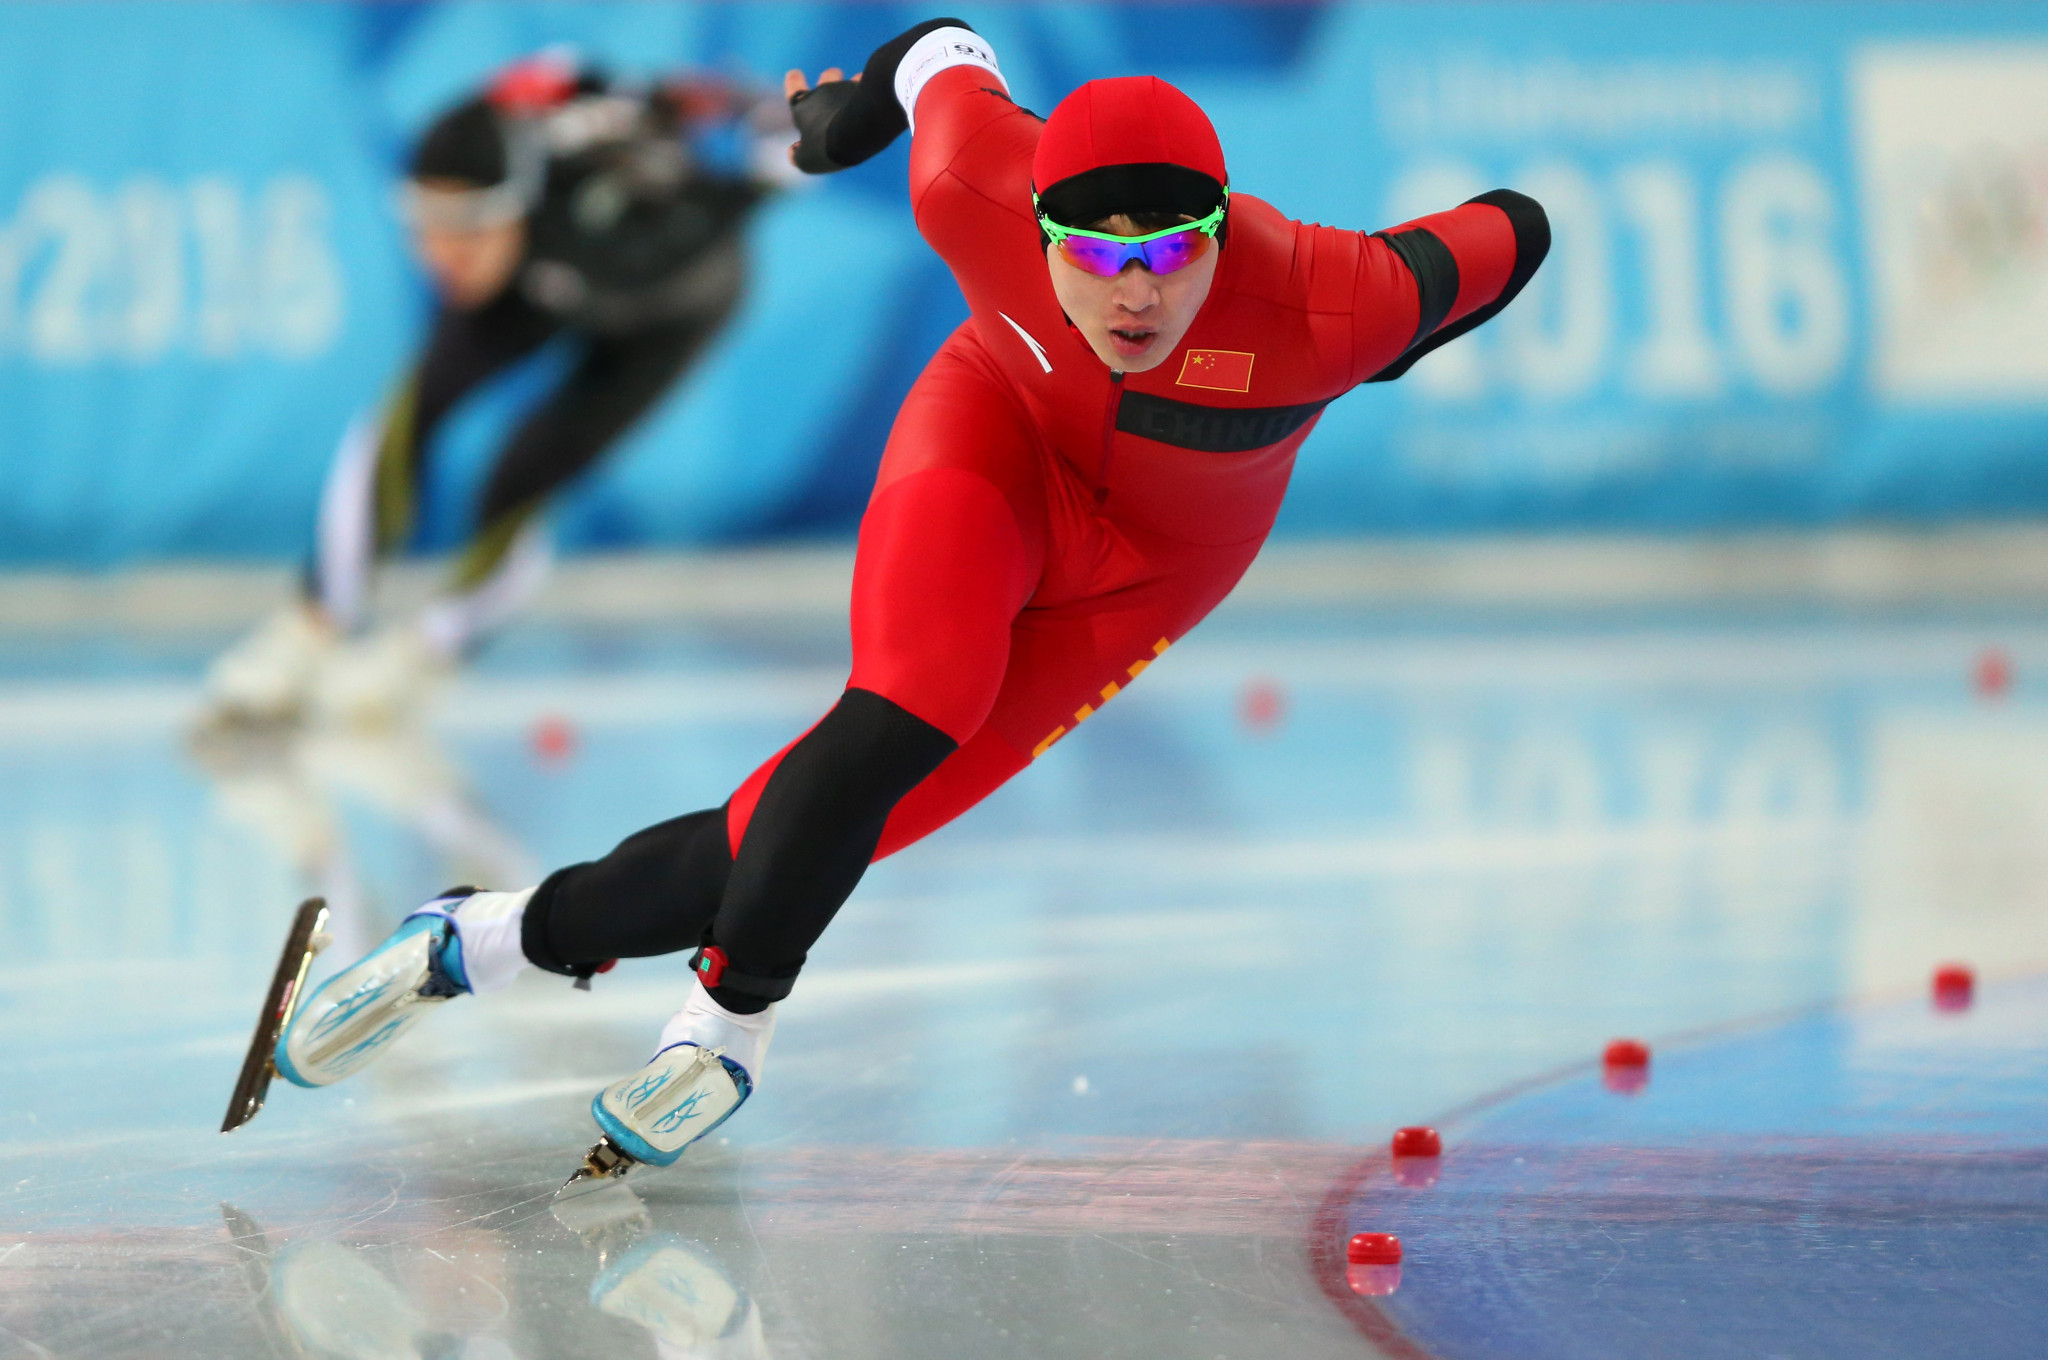 China sent a much smaller team of athletes to the Lillehammer 2016 Winter Youth Olympic Games than it will to Lausanne 2020 ©Getty Images